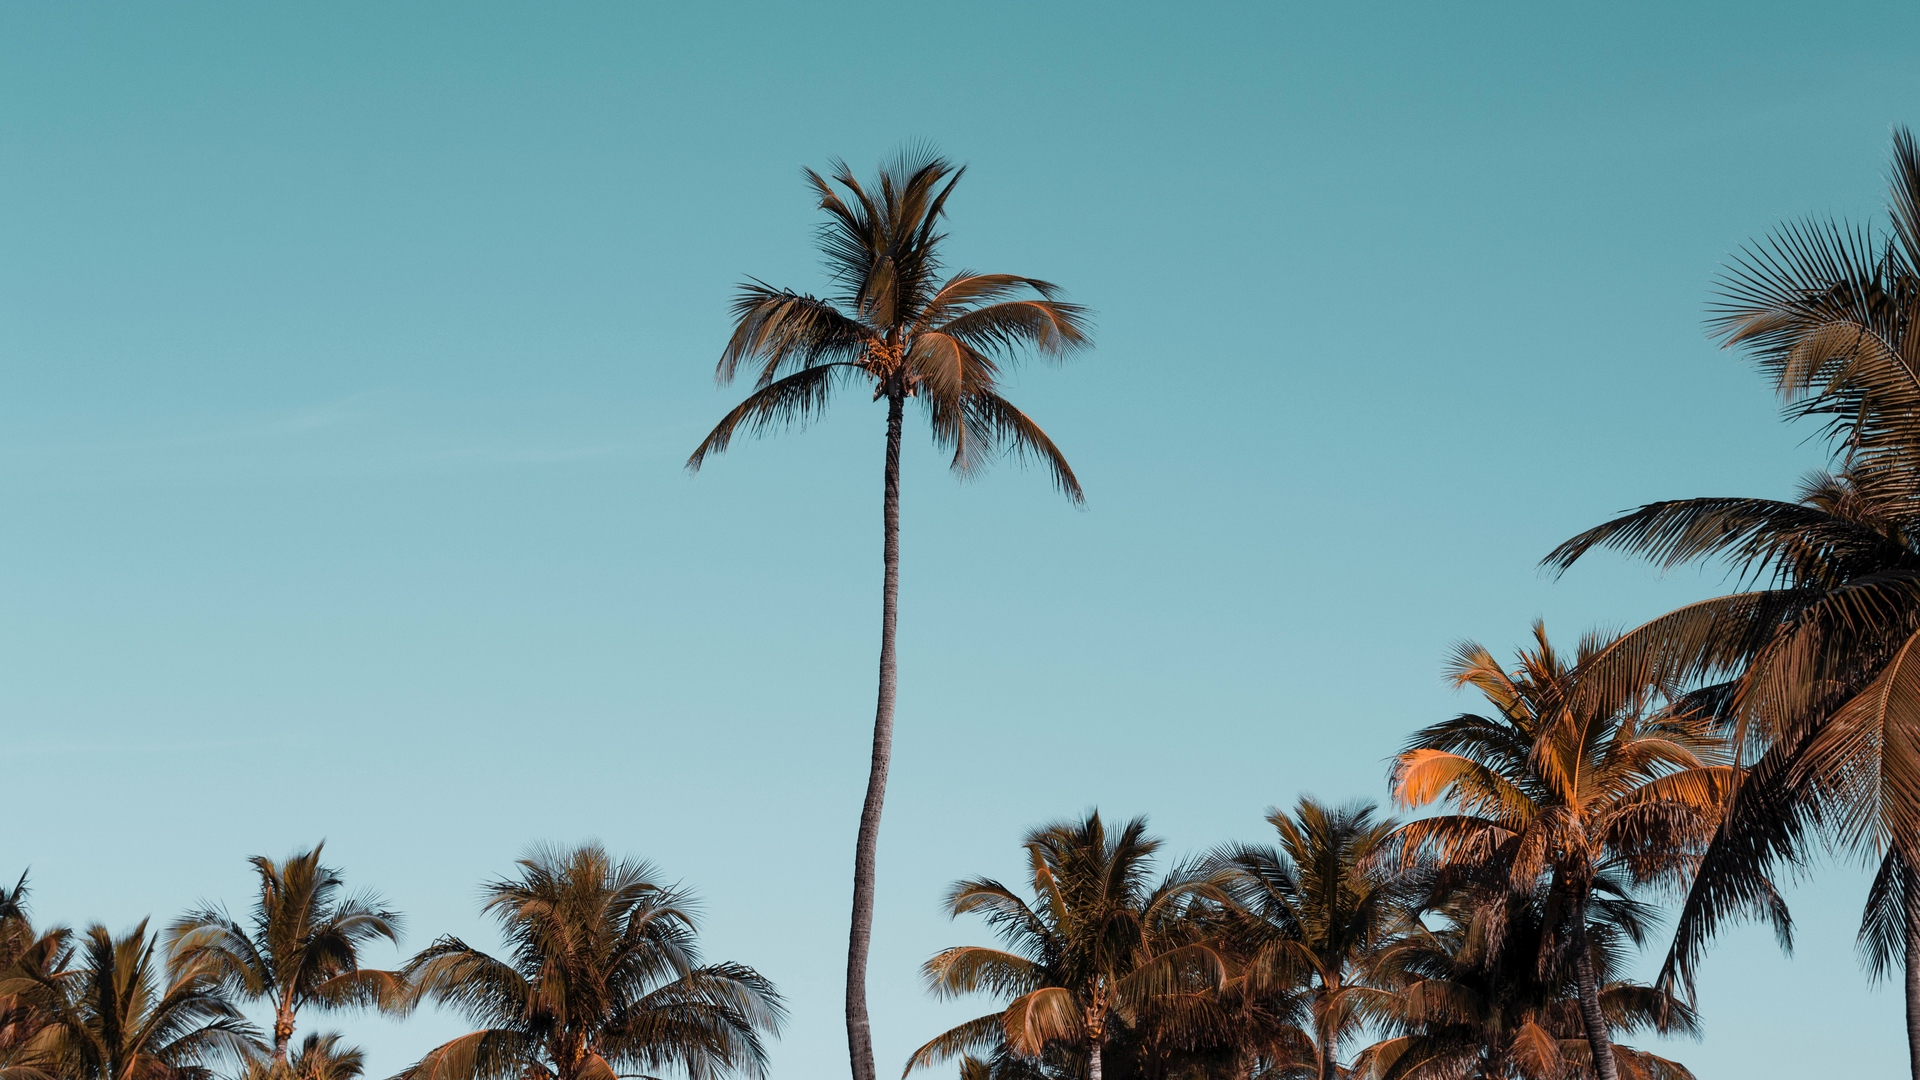 palm trees trees crowns